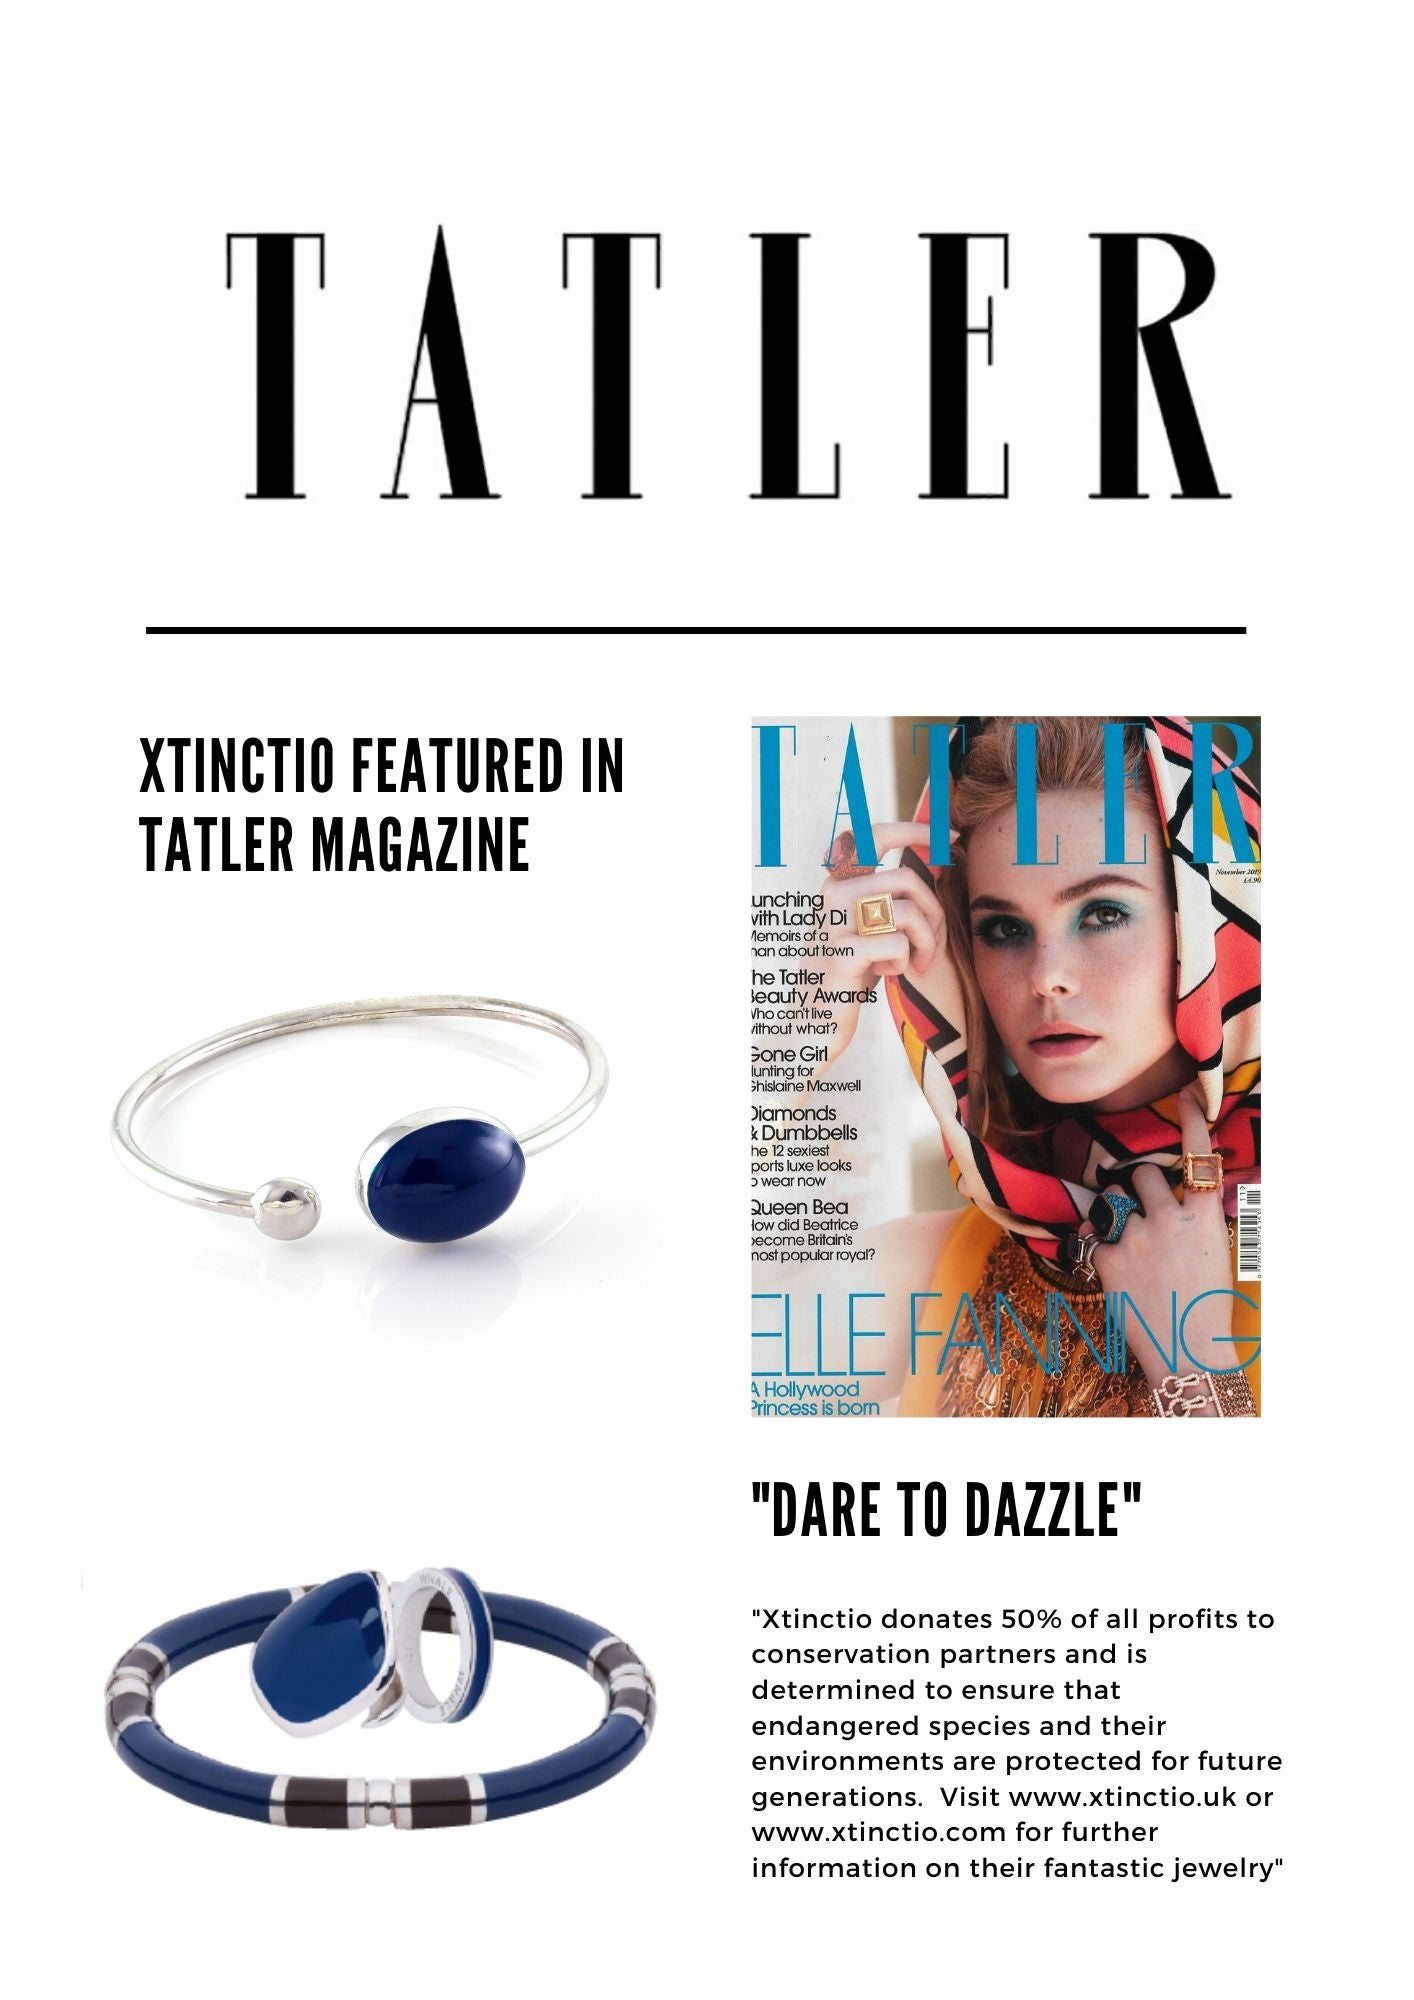 Xtinctio featured in Tattler Magazine